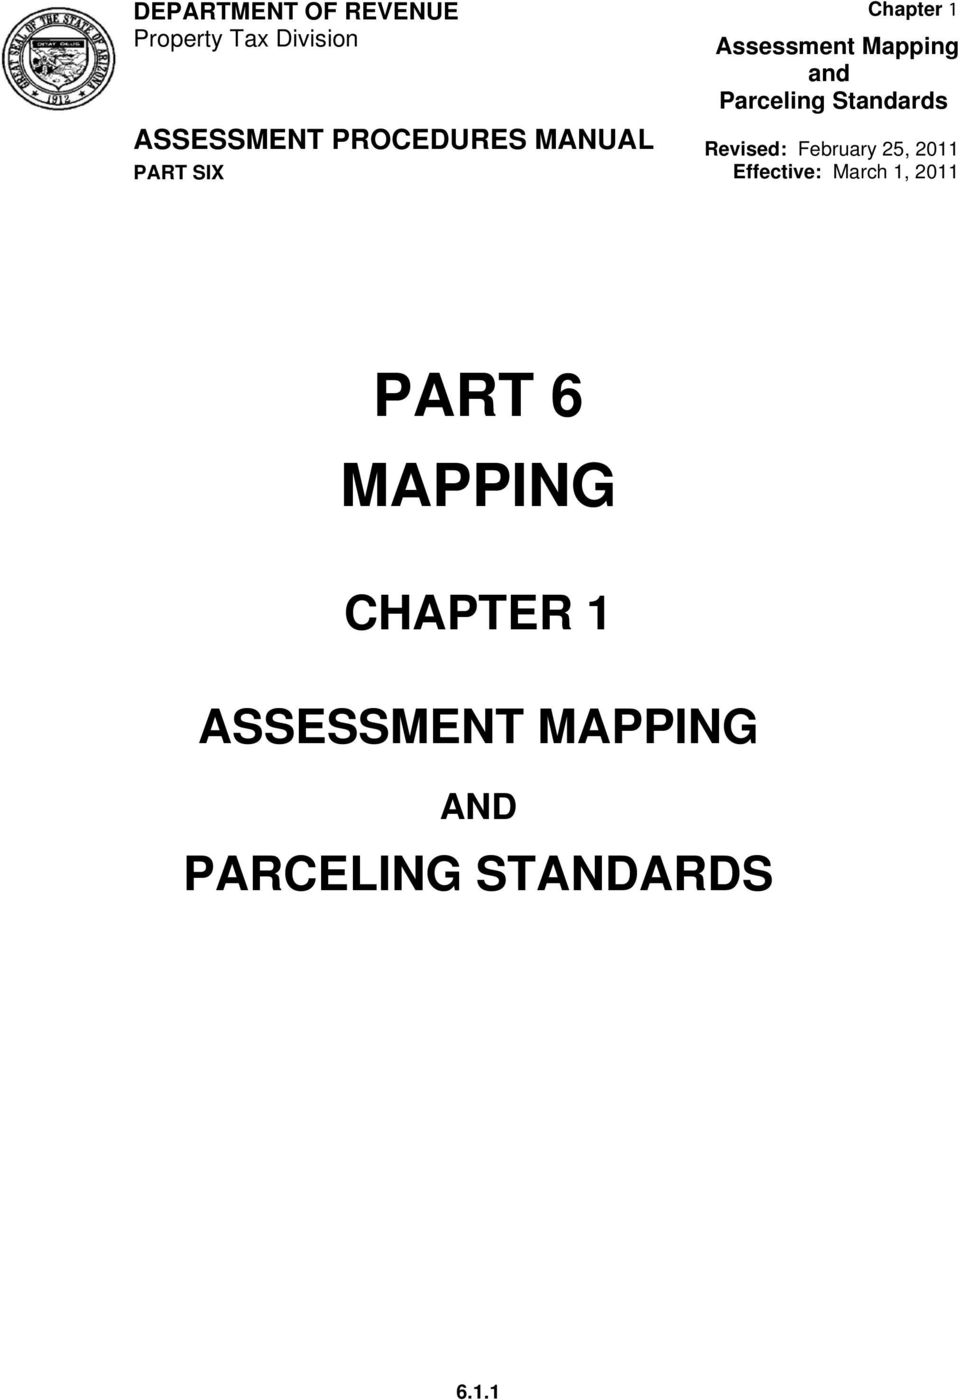 ASSESSMENT MAPPING AND